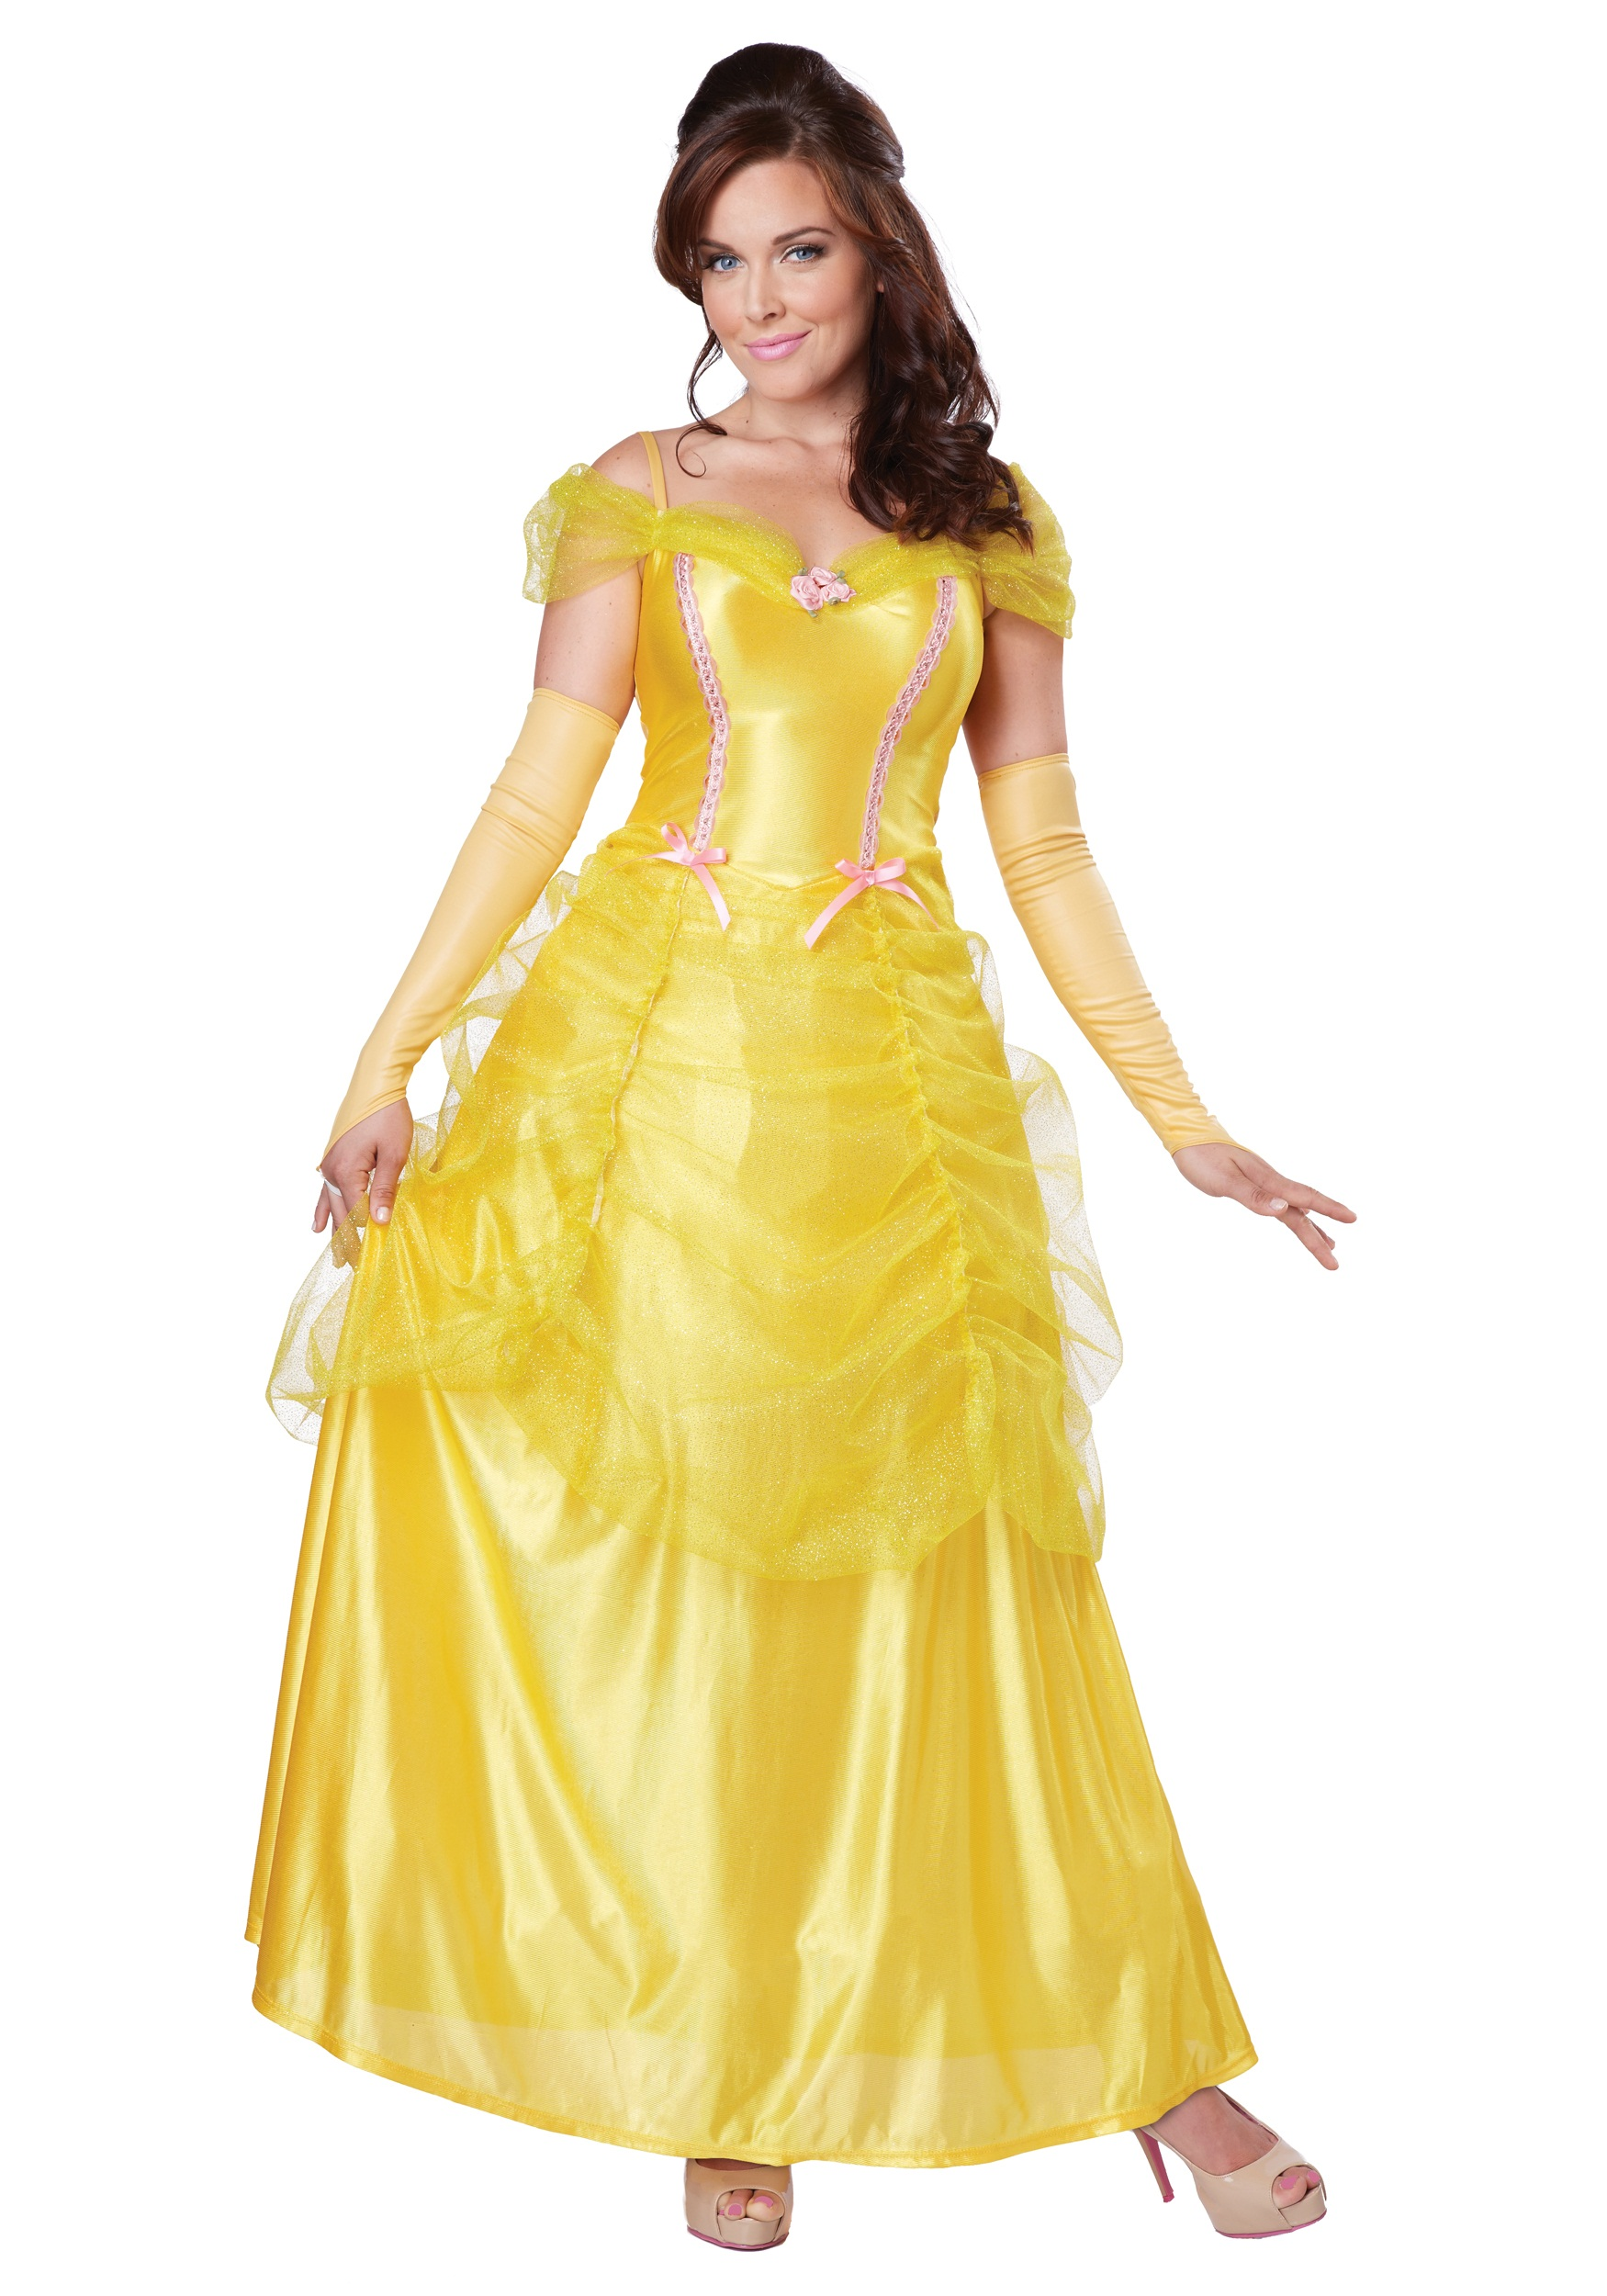 Women's Classic Beauty Fancy Dress Costume